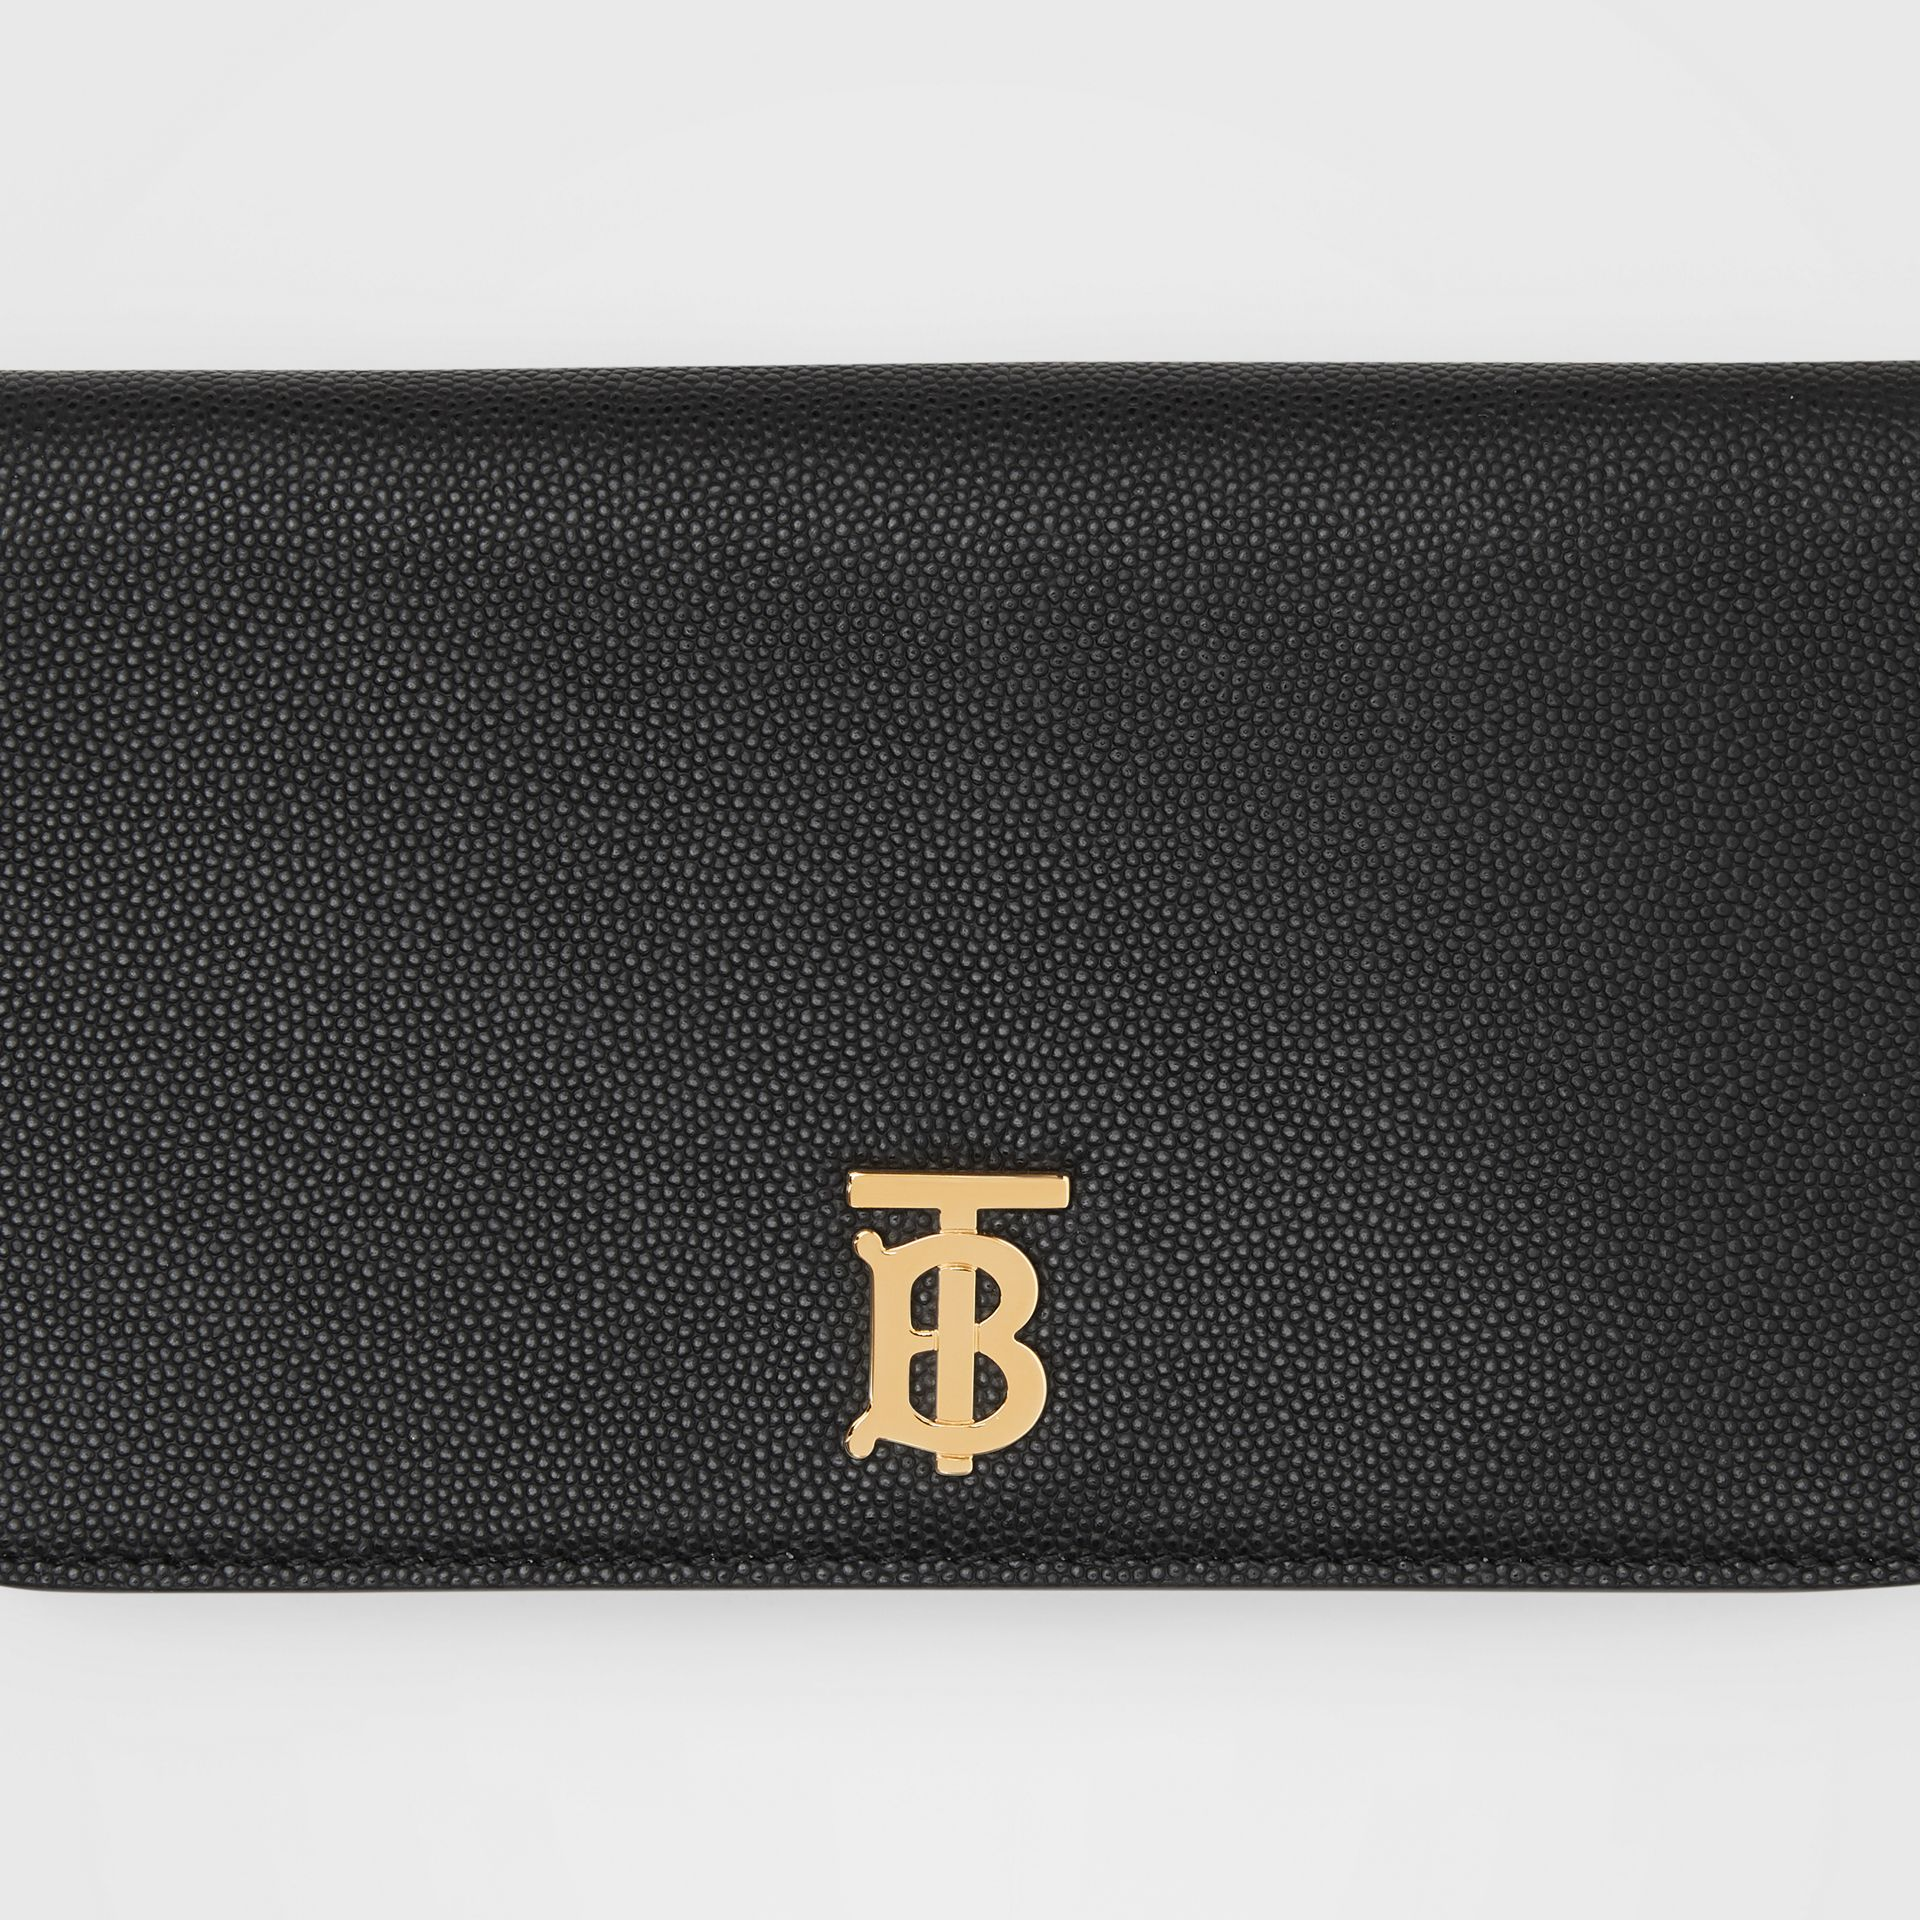 Grainy Leather Phone Wallet with Strap in Black - Women | Burberry United States - gallery image 1